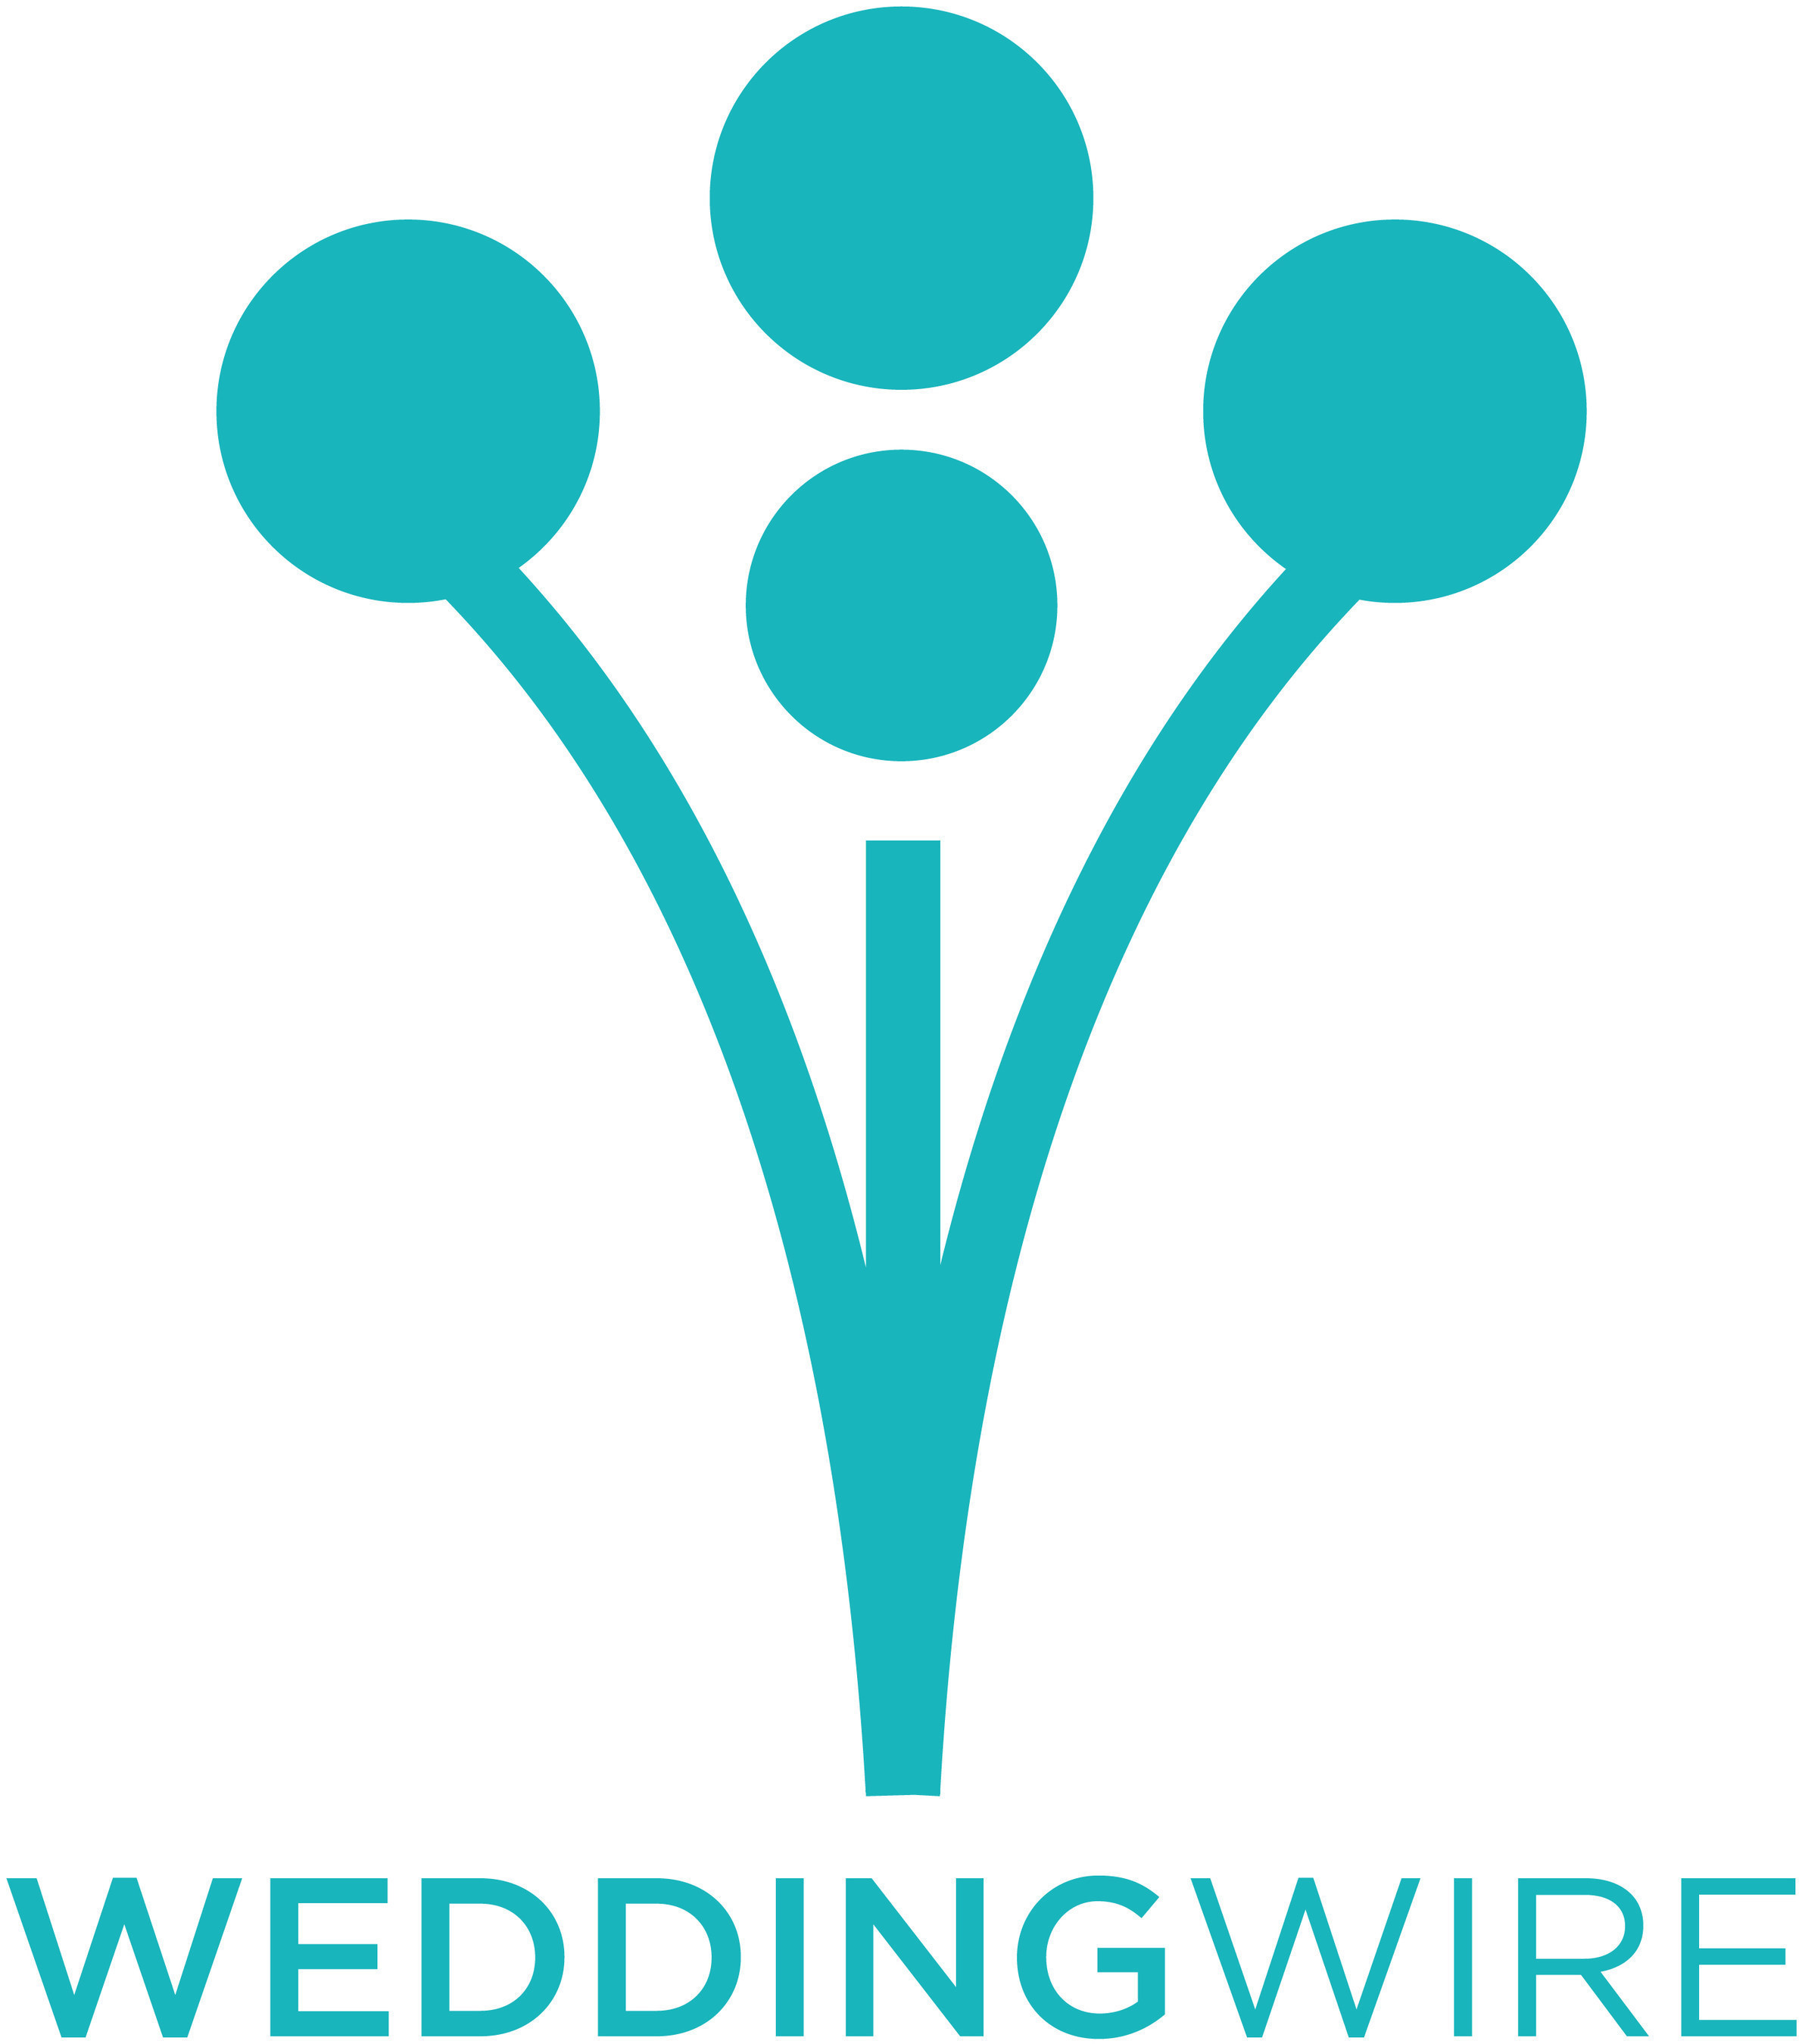 WeddingWire Announces Acquisition of Wedding Planner, Operator of Bodas.net